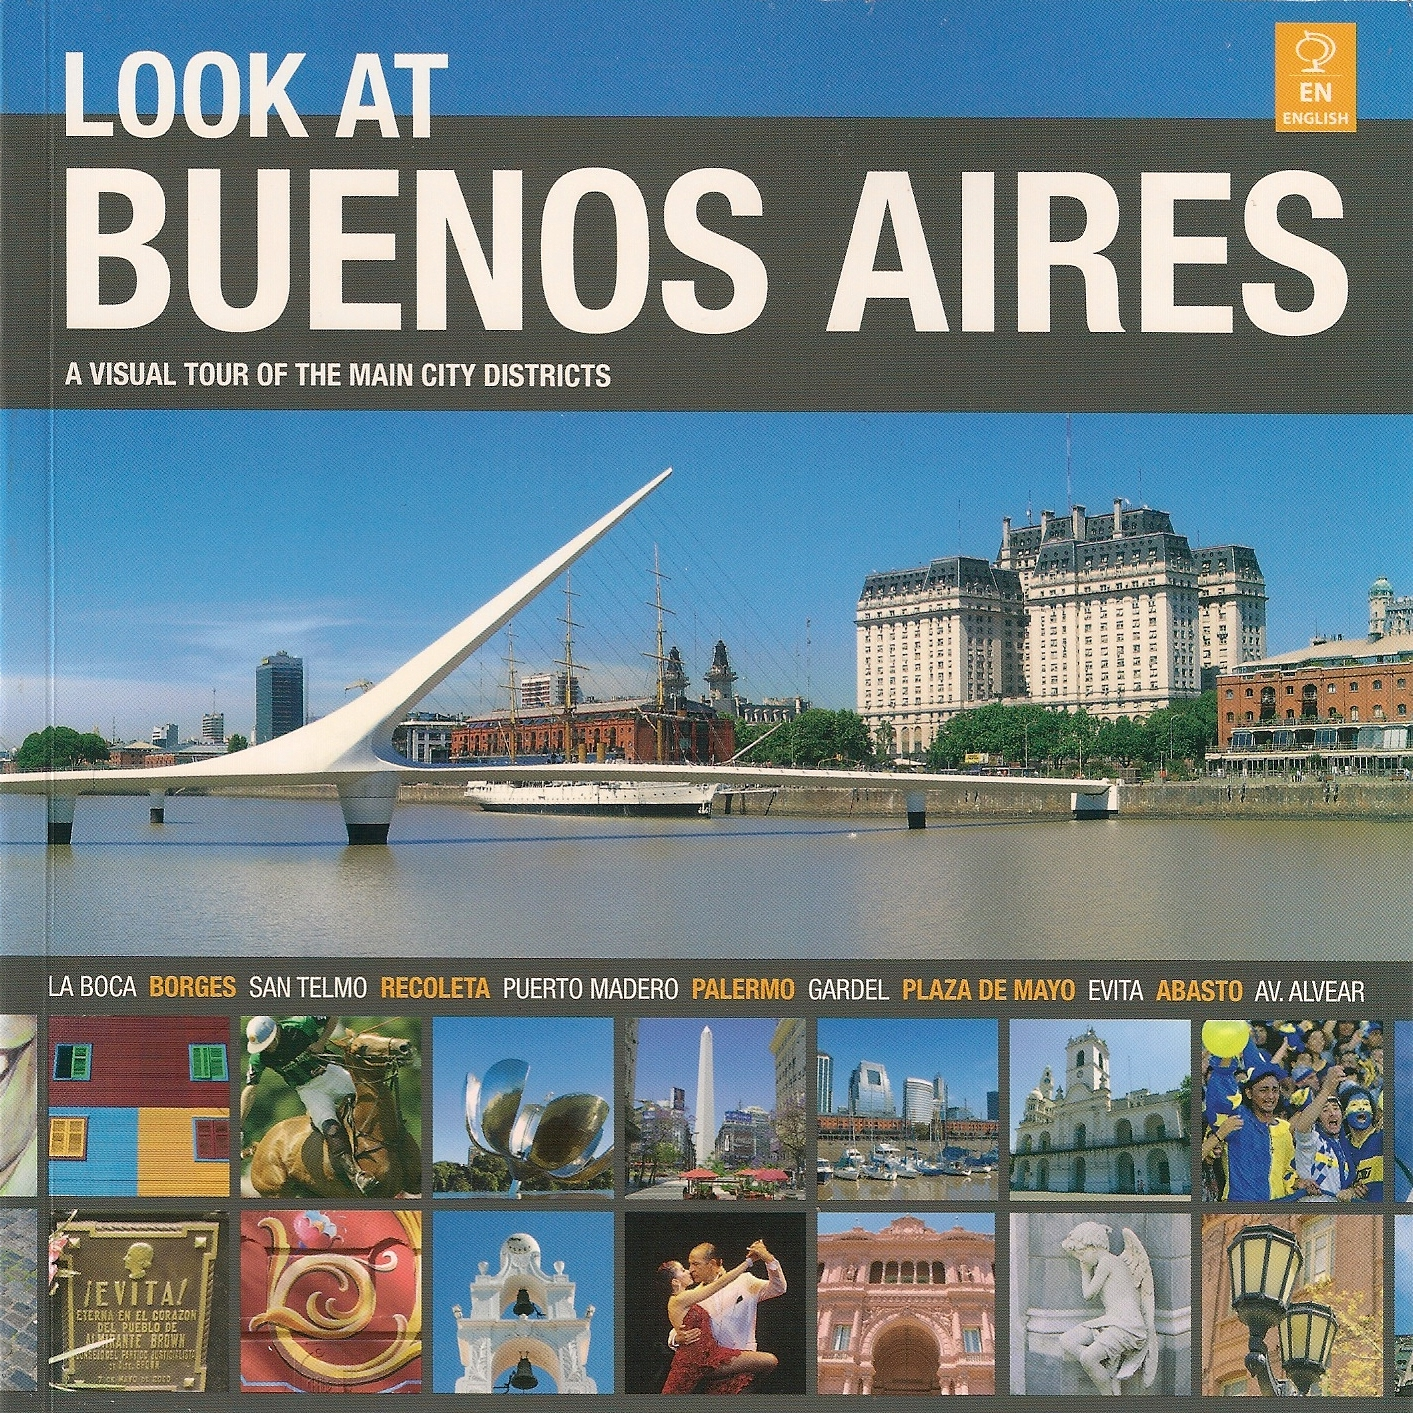 Look at Buenos Aires